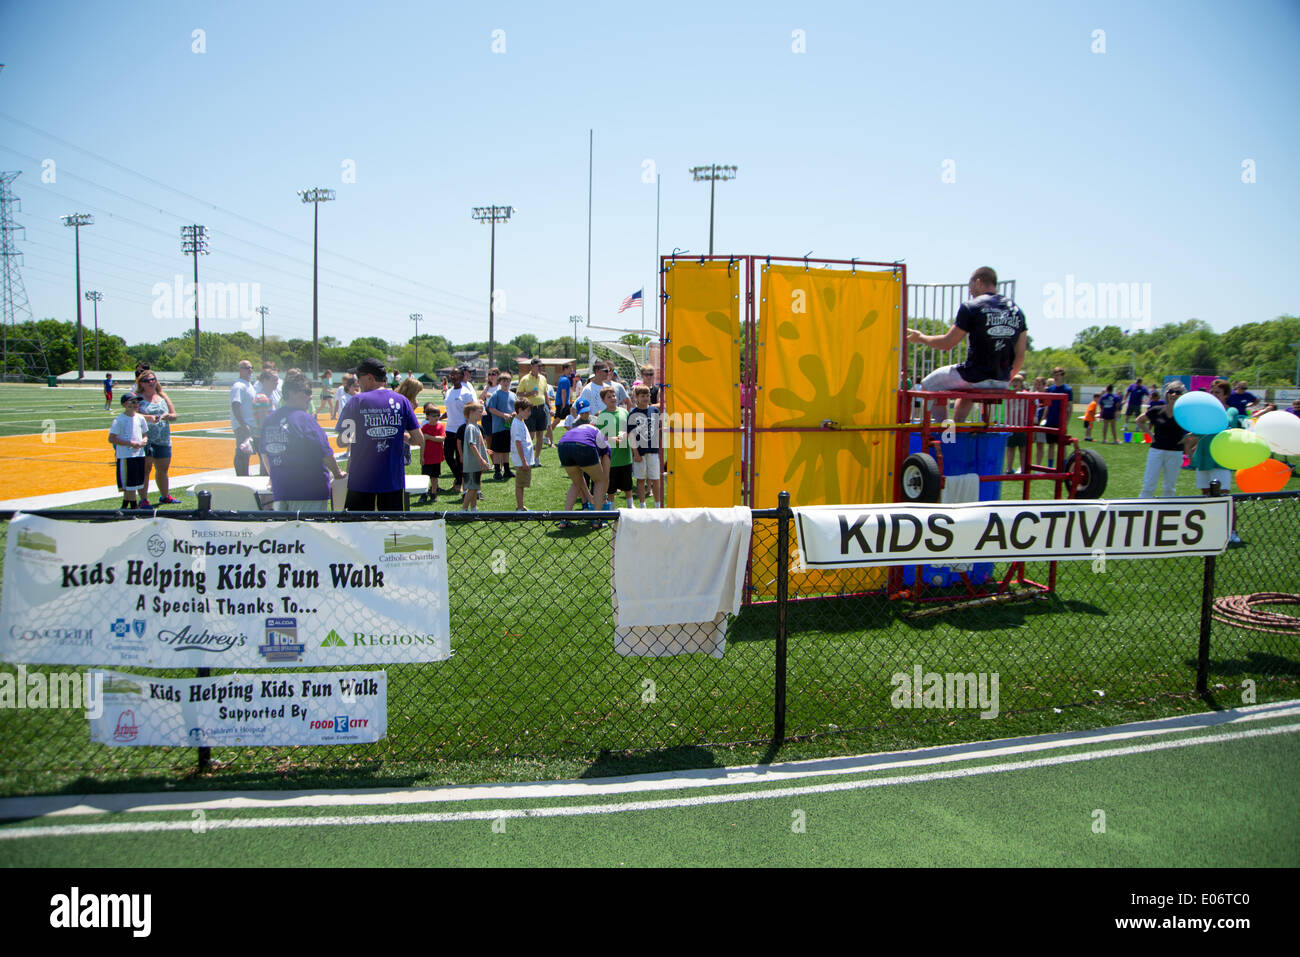 Knoxville, Tennessee, USA. 04th May, 2014. Harrison Smith Of The Minnesota Vikings Professional Football Team In The Dunk Tank At The Kids Helping Kids Fun Walk In Knoxville, Tennessee, USA on May 4, 2014 Credit:  Marc Griffin/Alamy Live News - Stock Image